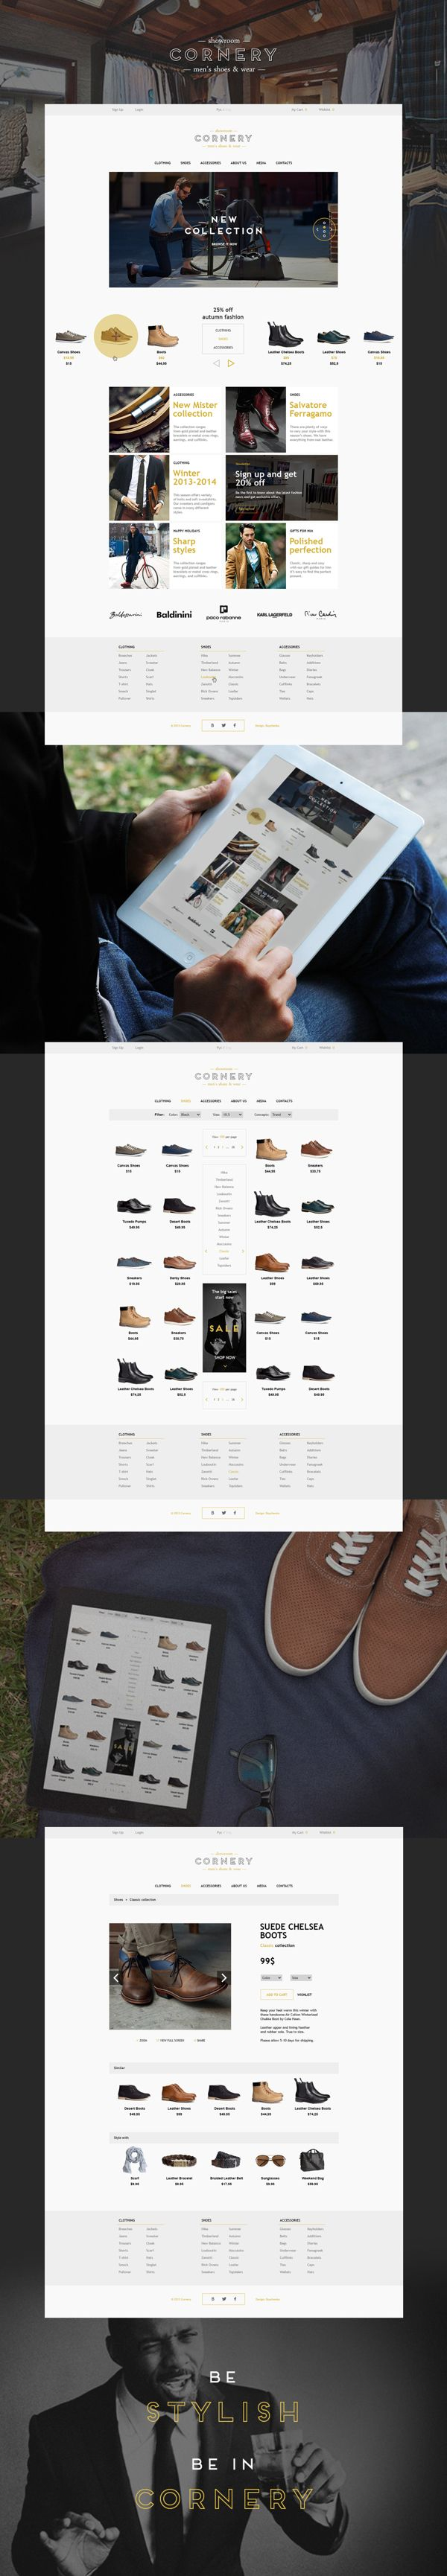 Cornery on Behance